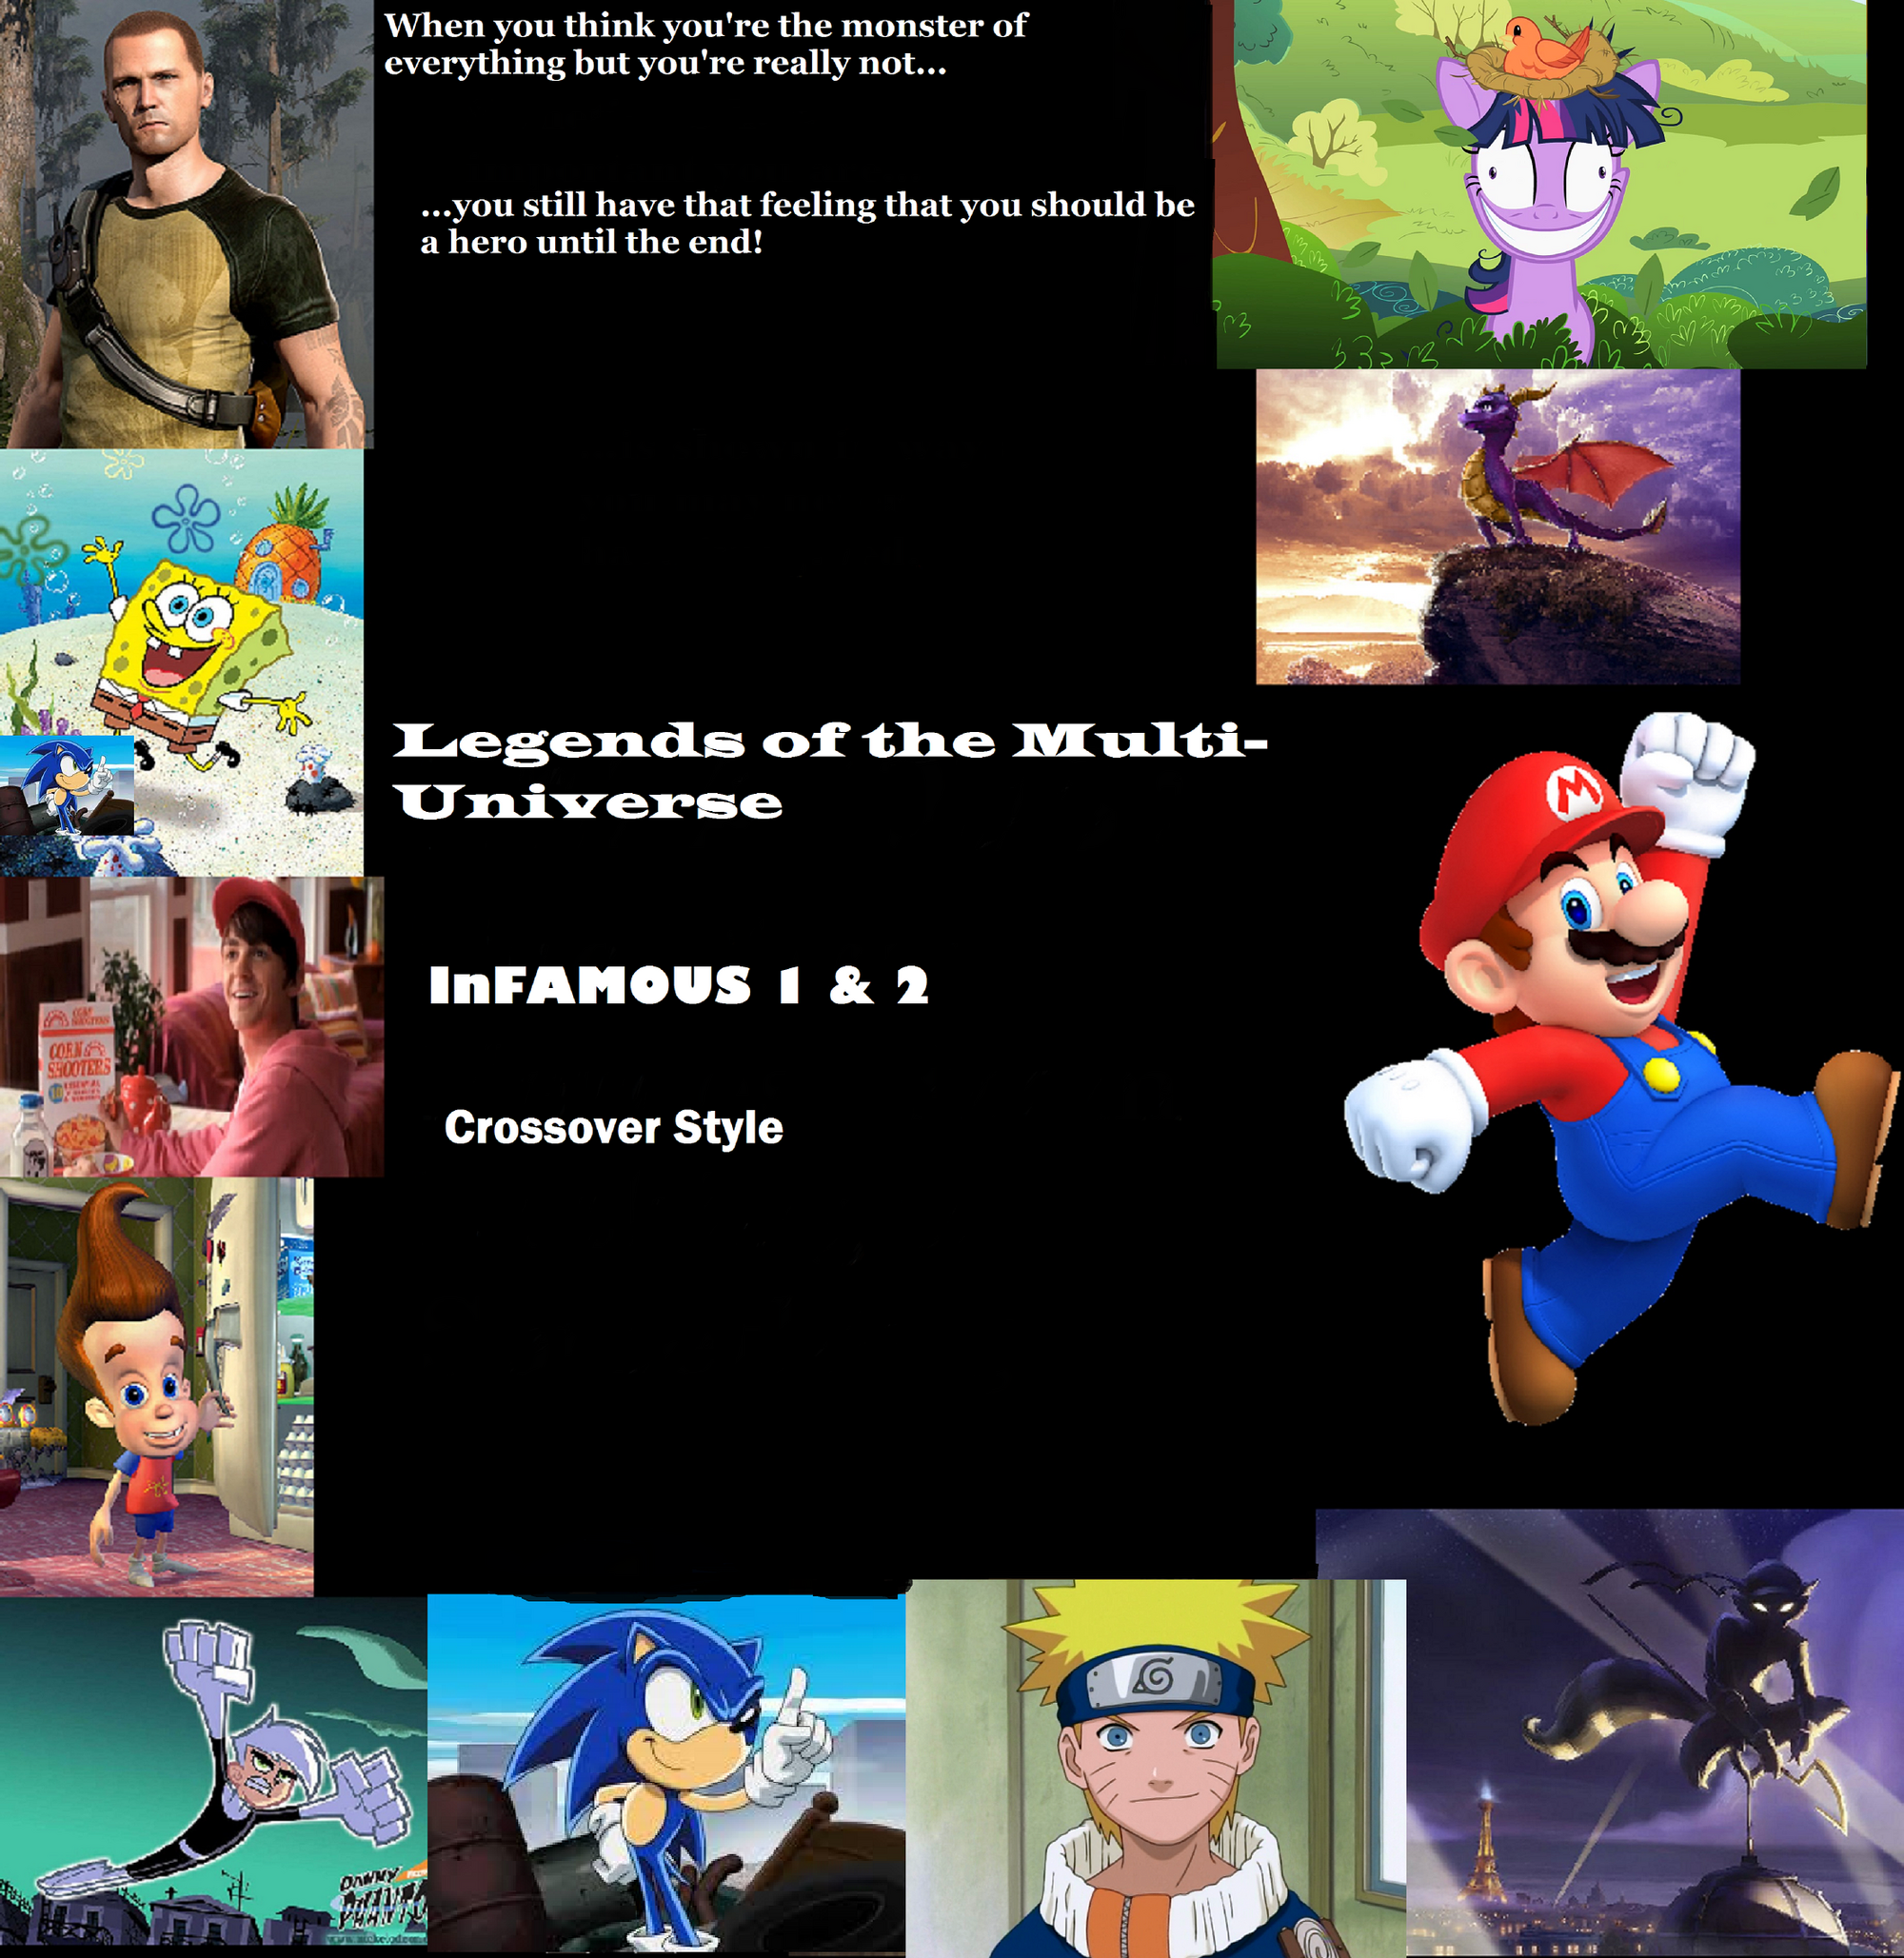 Legends Of The Multi Universe Wiki: InFAMOUS 1 & 2 (Crossover Style)